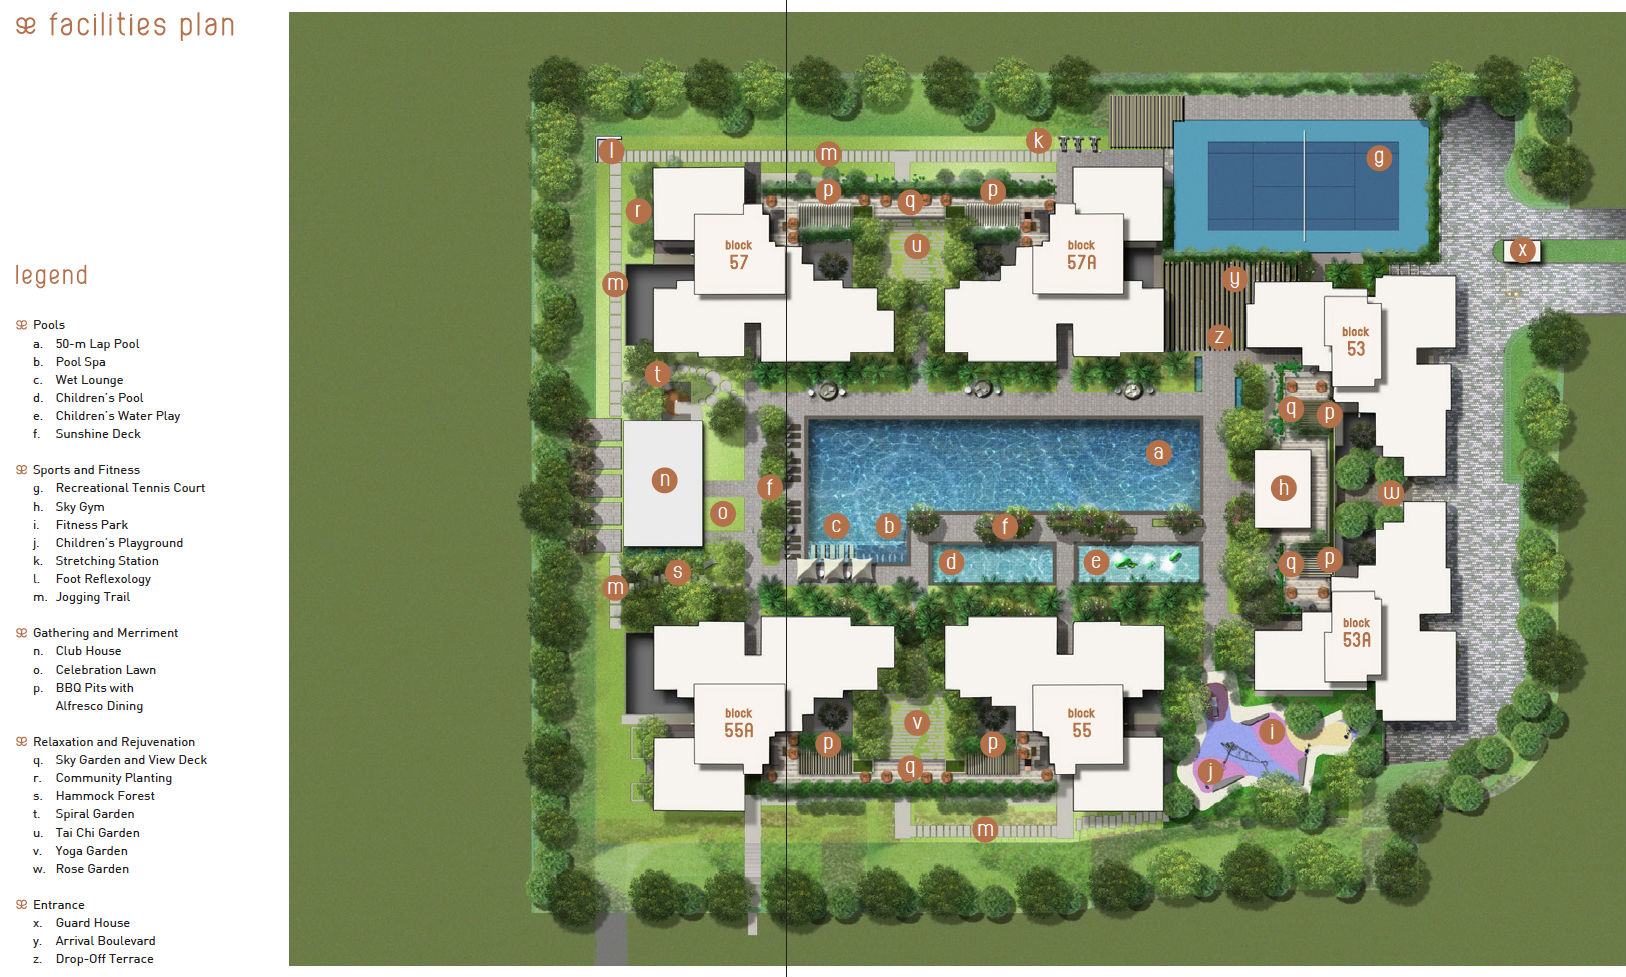 The Amore EC Site Plans U0026 Floor Plans   The Amore Executive Condominium  Singapore